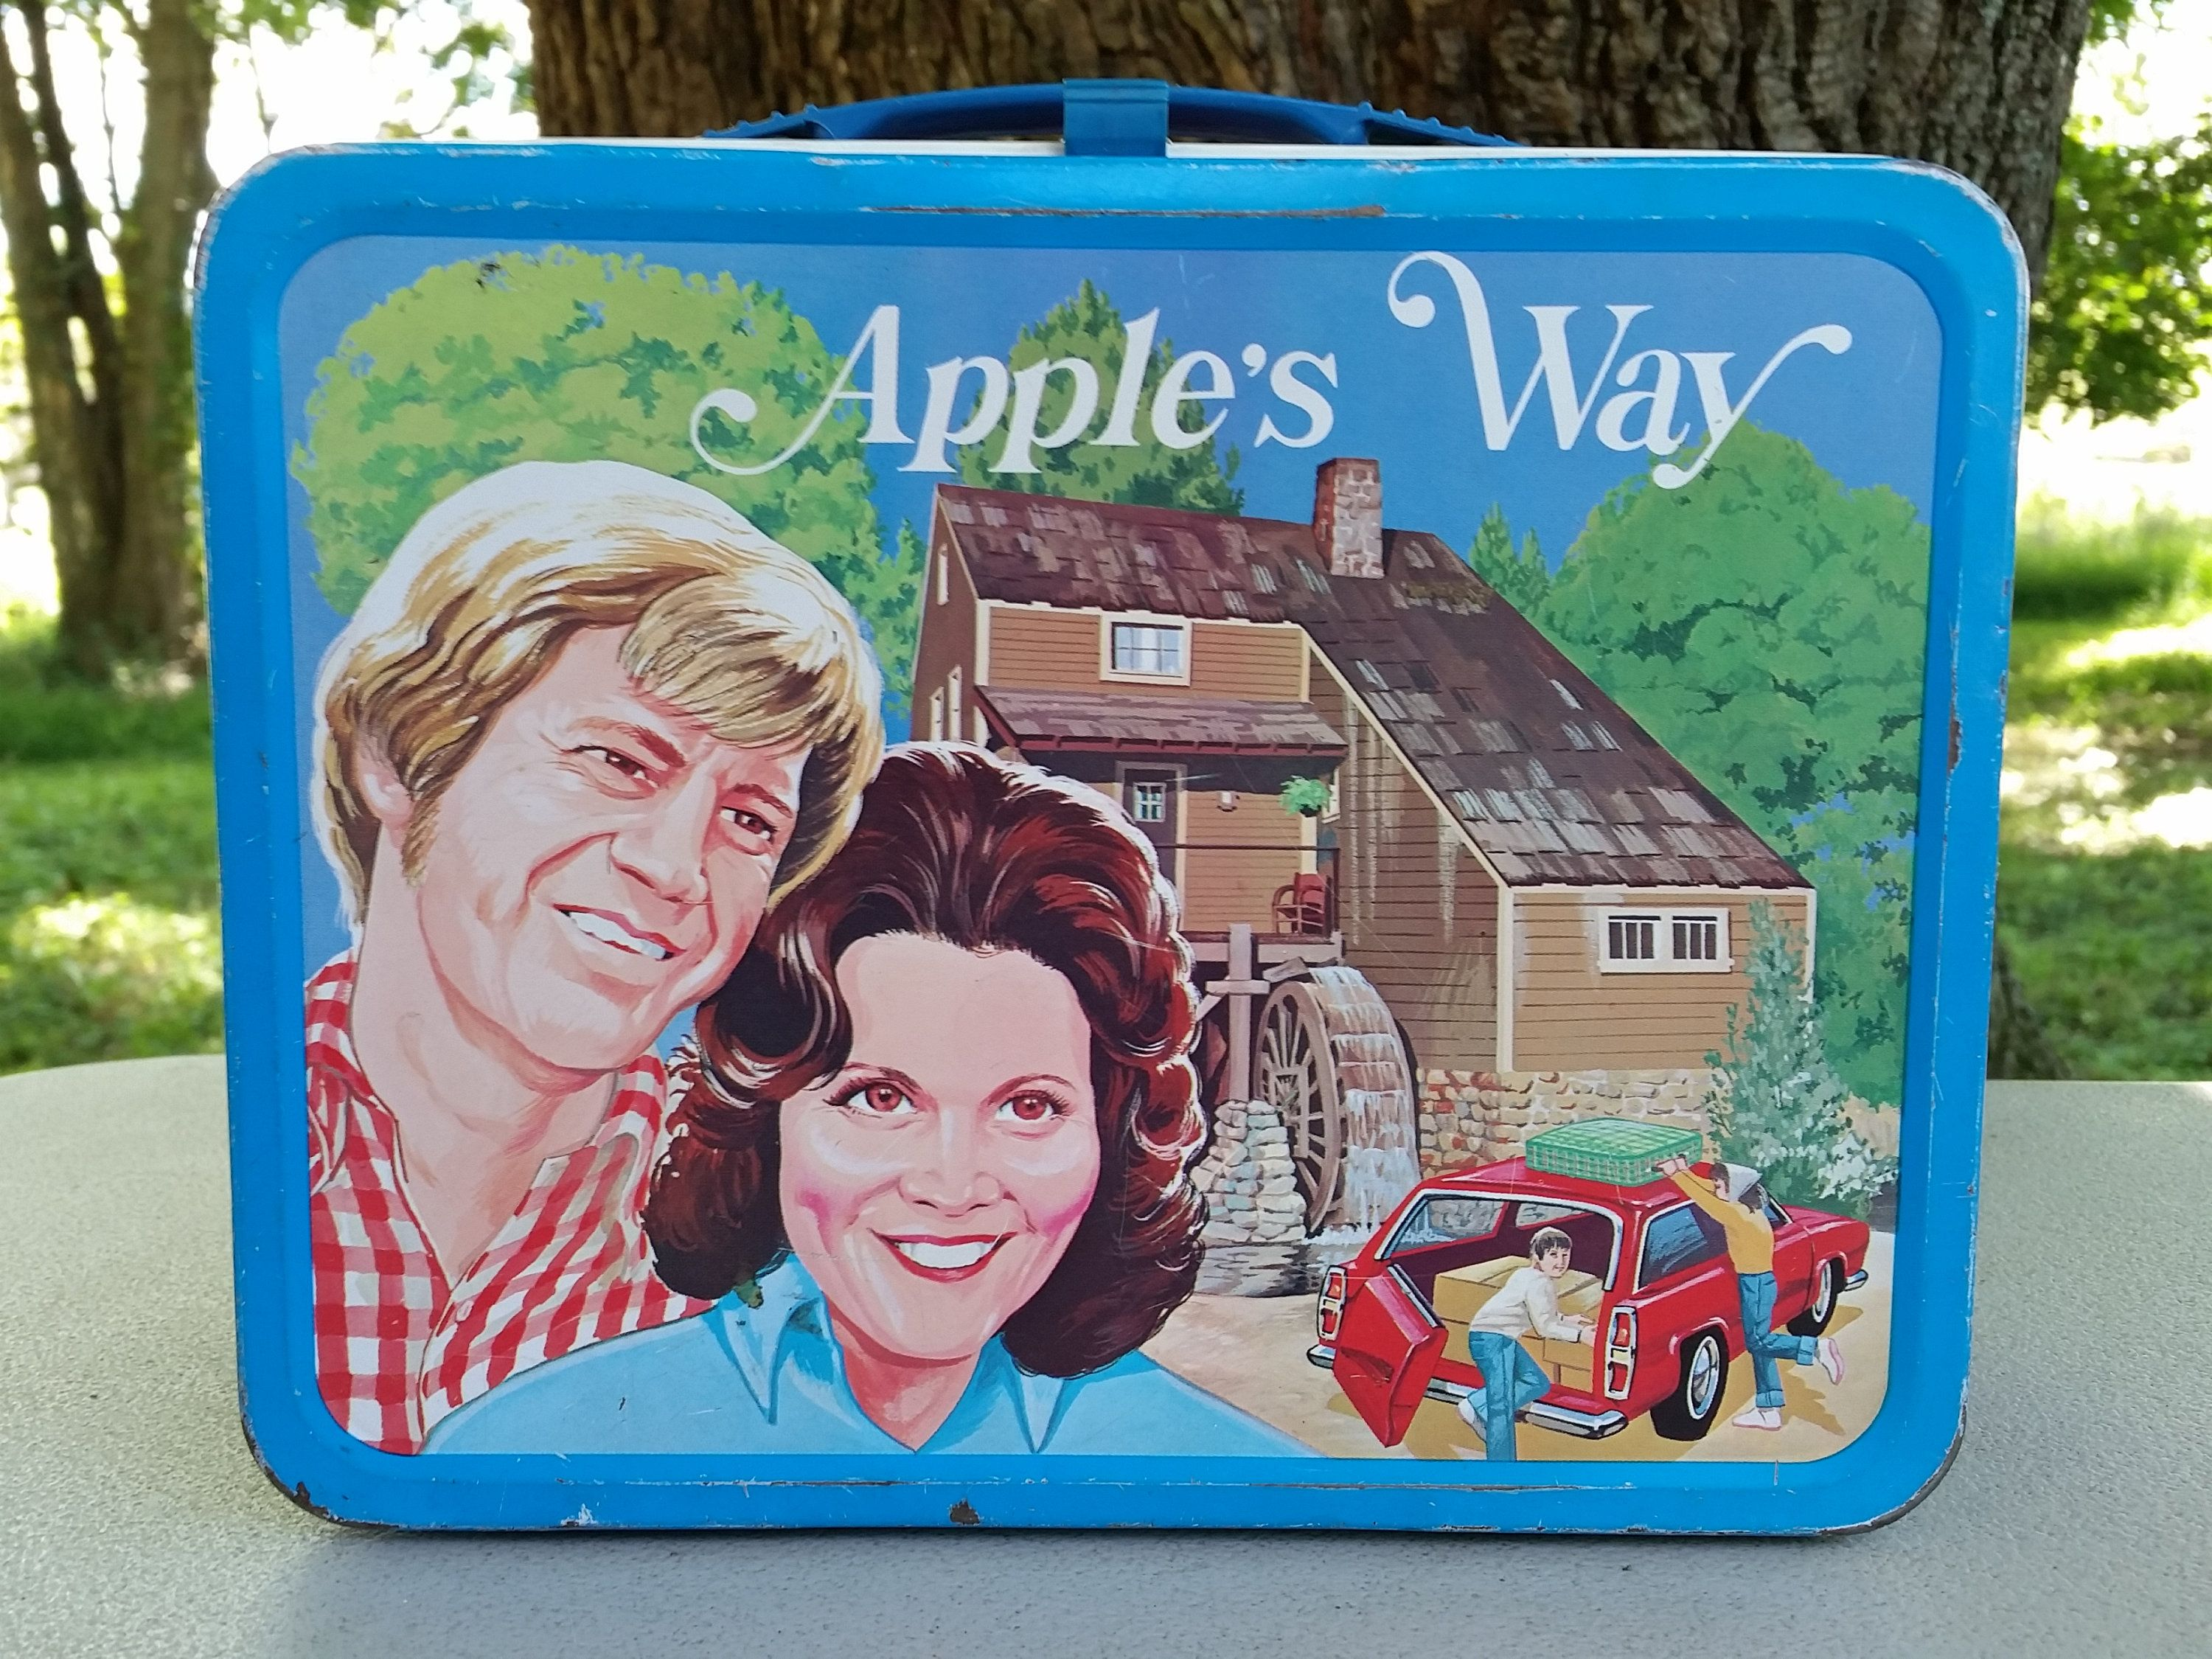 Apples way lunch box by thermos 1975 lunch box apple